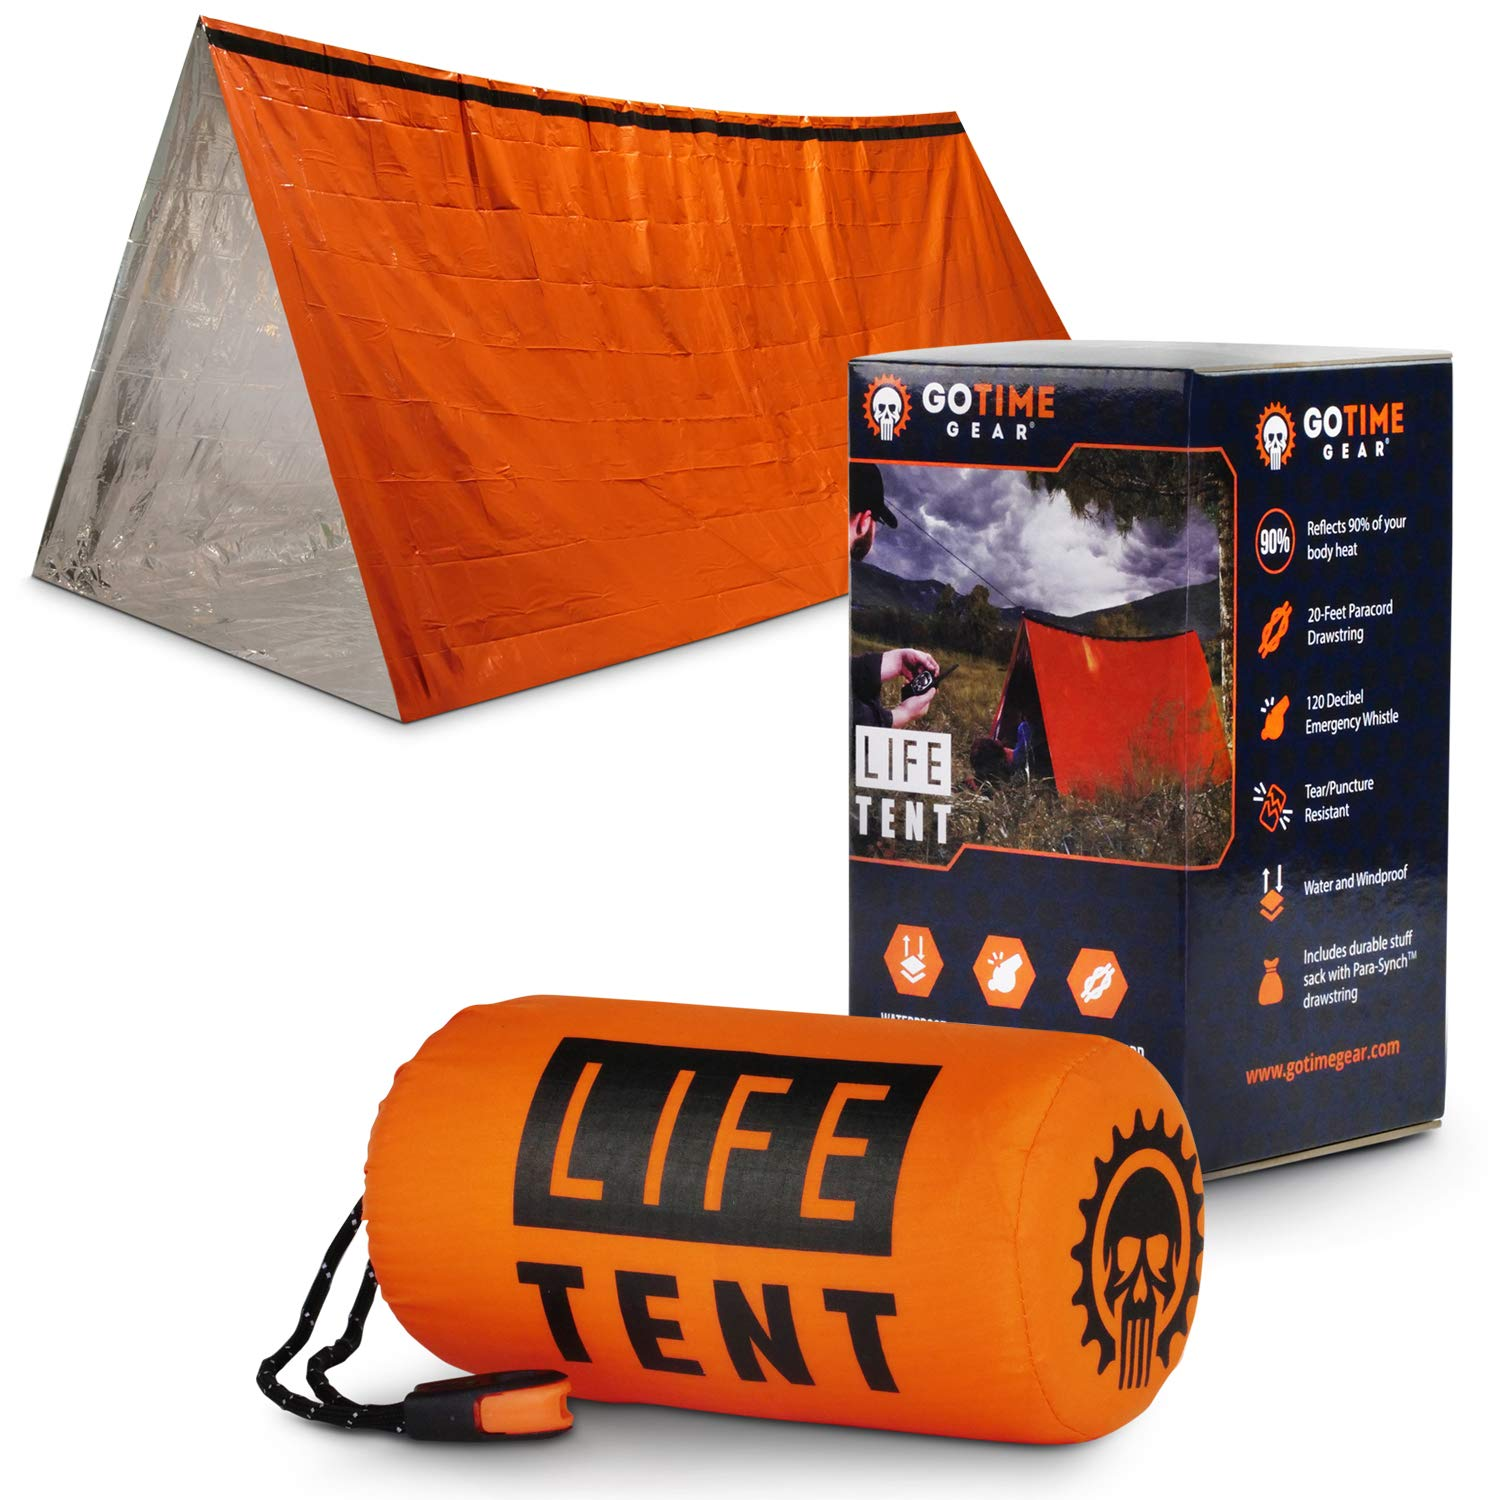 Go Time Gear Life Tent Emergency Survival Shelter - 2 Person Emergency Tent - Use As Survival Tent, Emergency Shelter, Tube Tent, Survival Tarp - Includes Survival Whistle & Paracord (Orange) by Go Time Gear